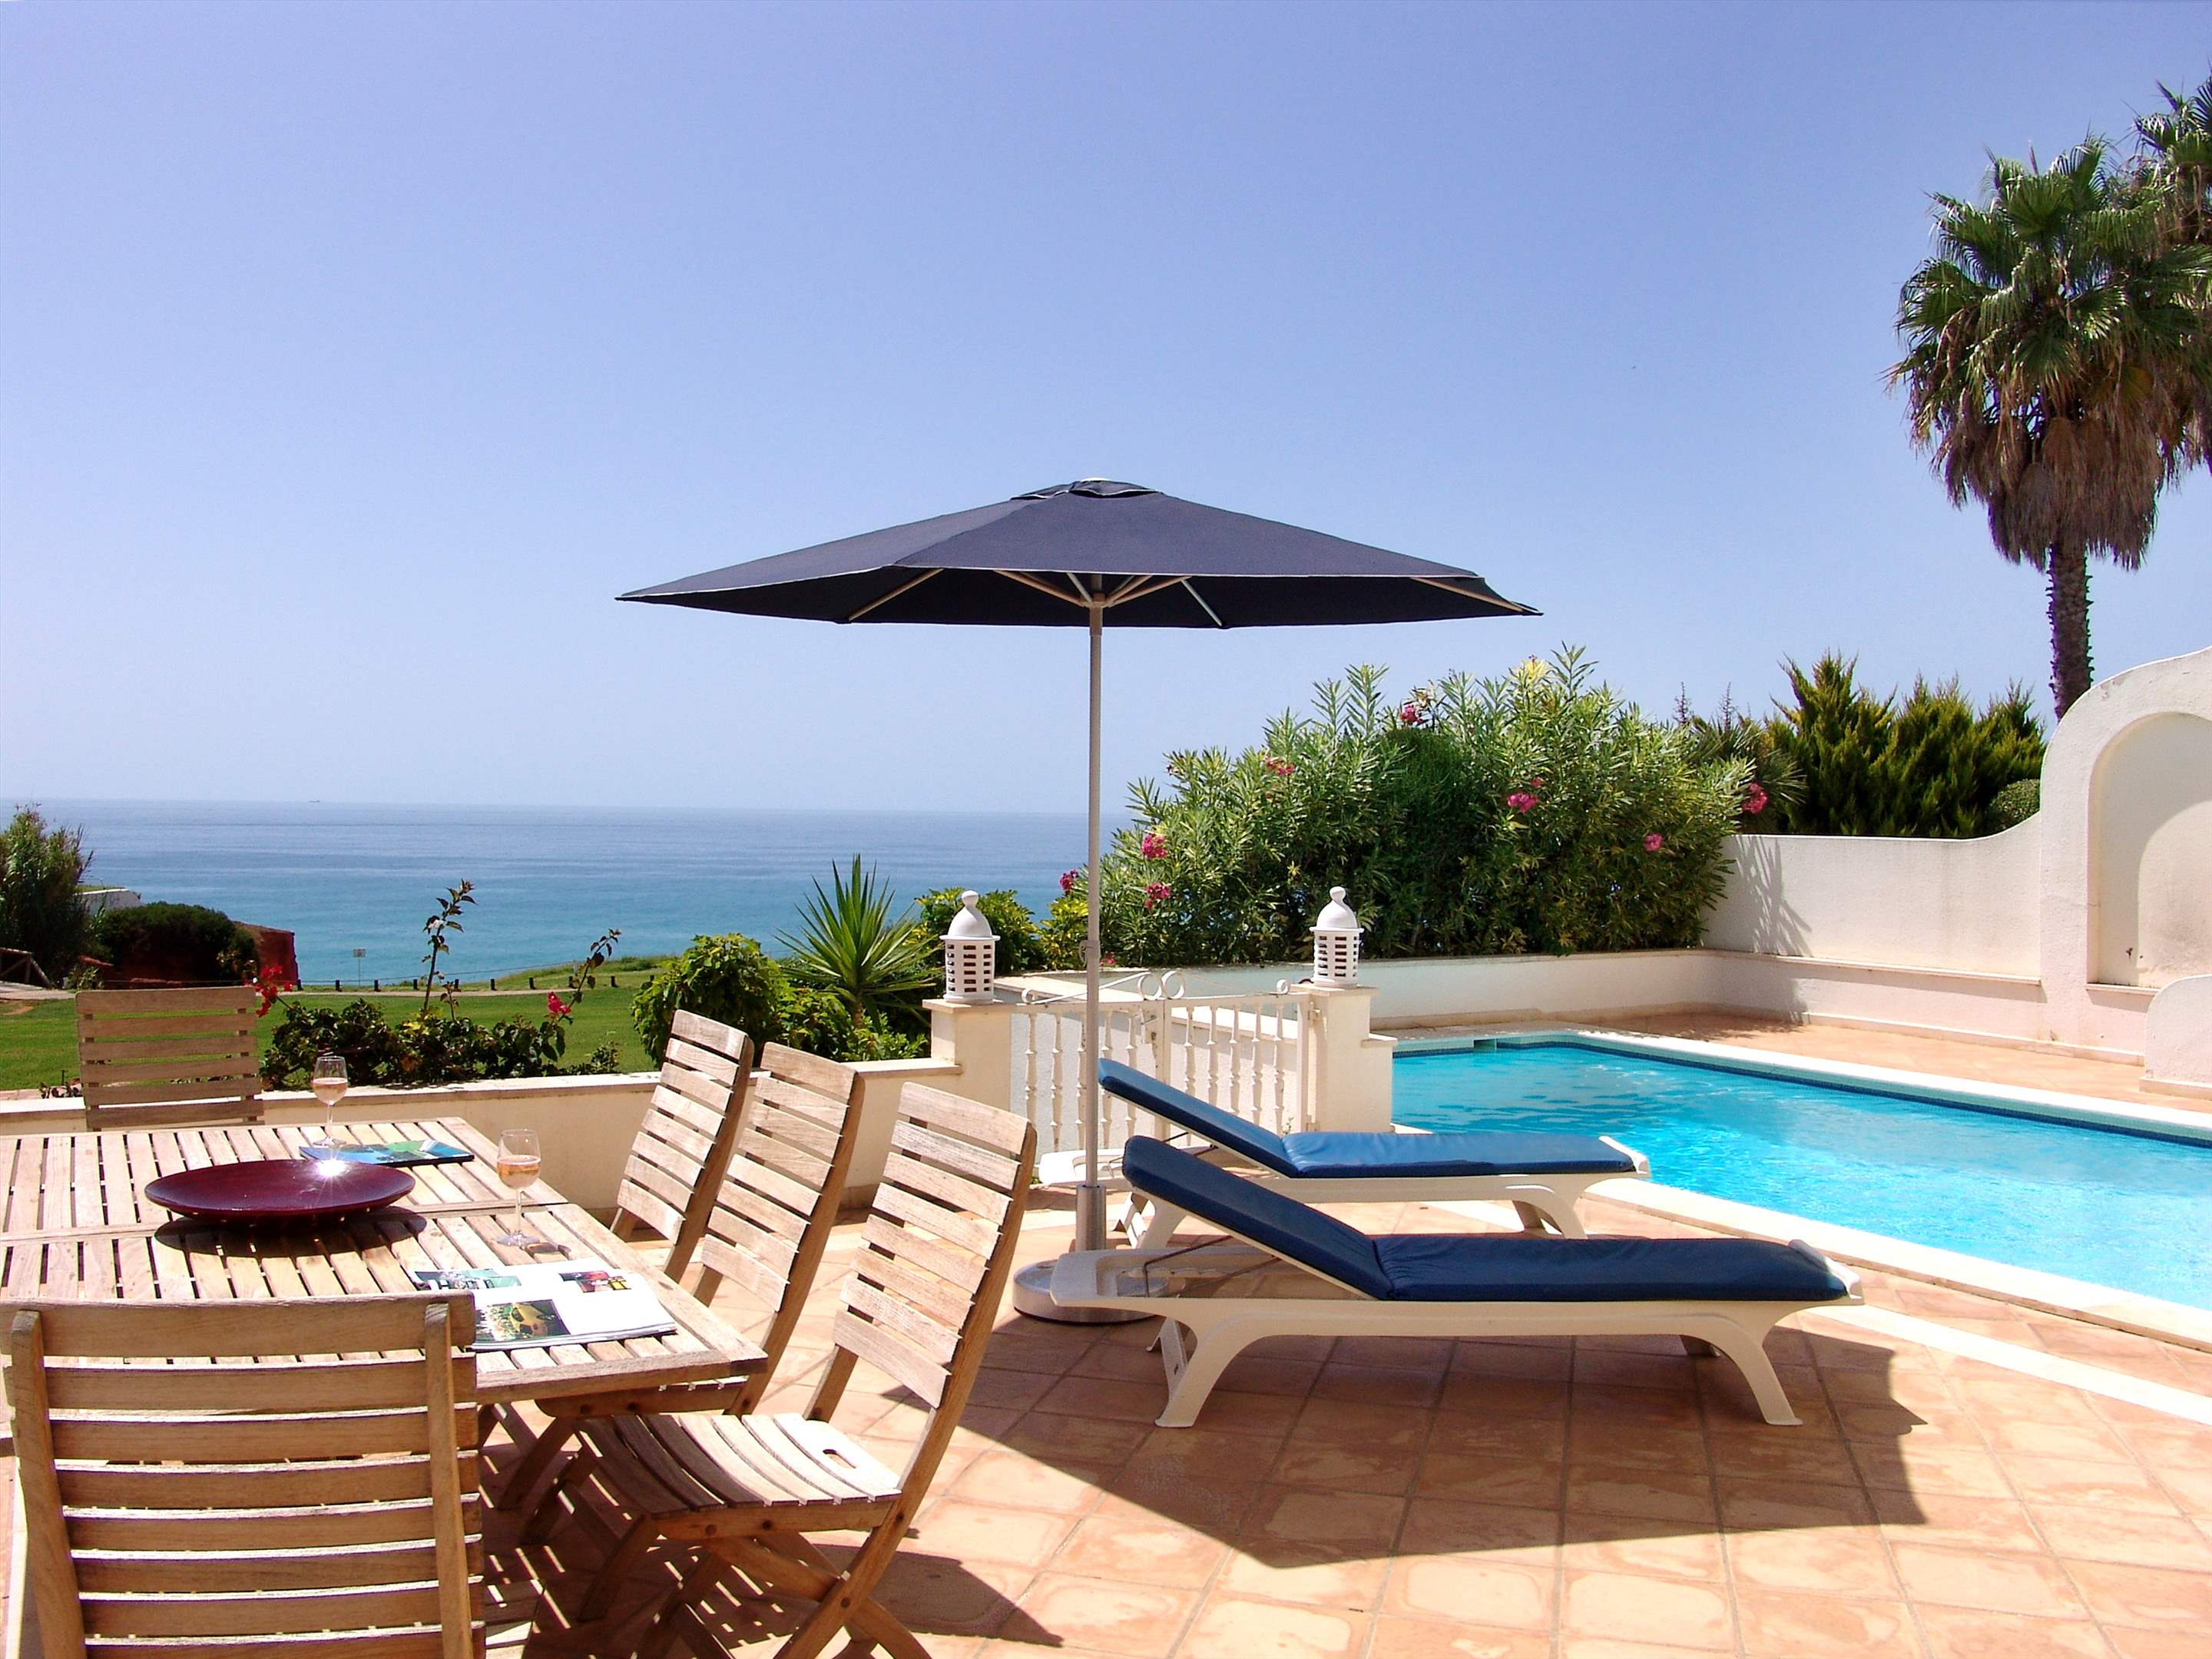 Villas Louisa, 4 Bedroom, 4 bedroom villa in Vale do Lobo, Algarve Photo #2